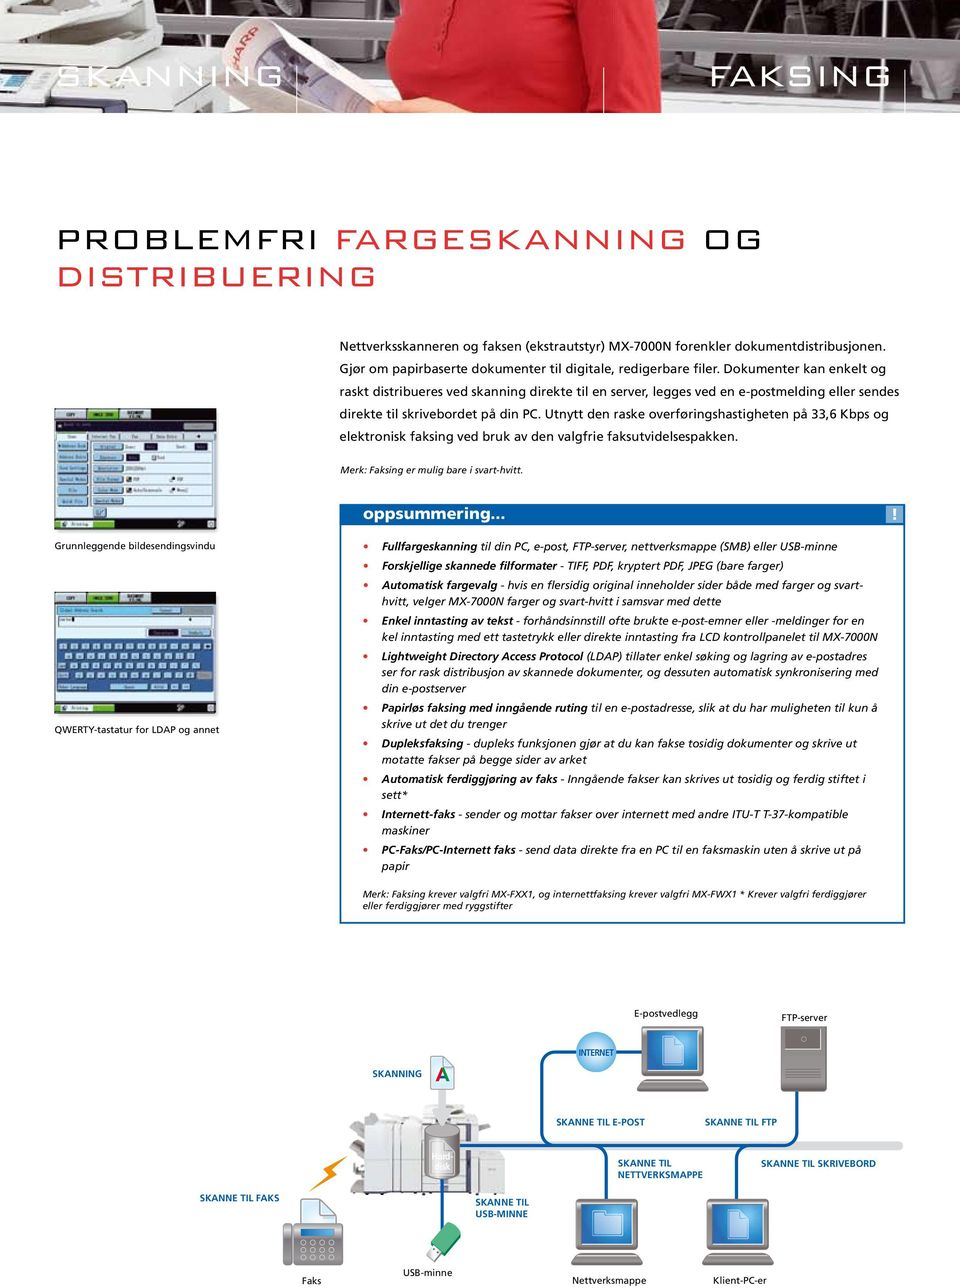 Documents Dokumenter can be kan easily enkelt and og raskt quickly distribueres distributed ved by skanning scanning direkte directly til to en a server, location, legges ved attached en